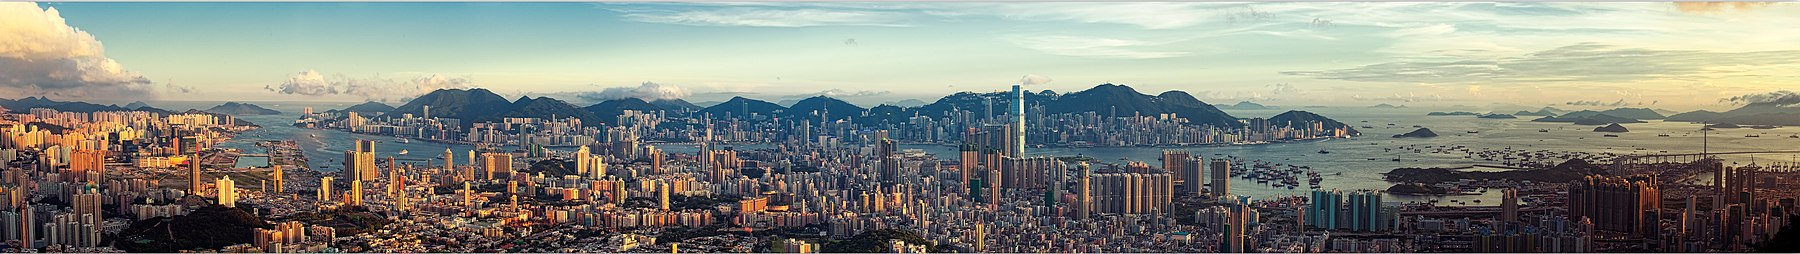 Kowloon Panorama by Ryan Cheng 2010.jpg